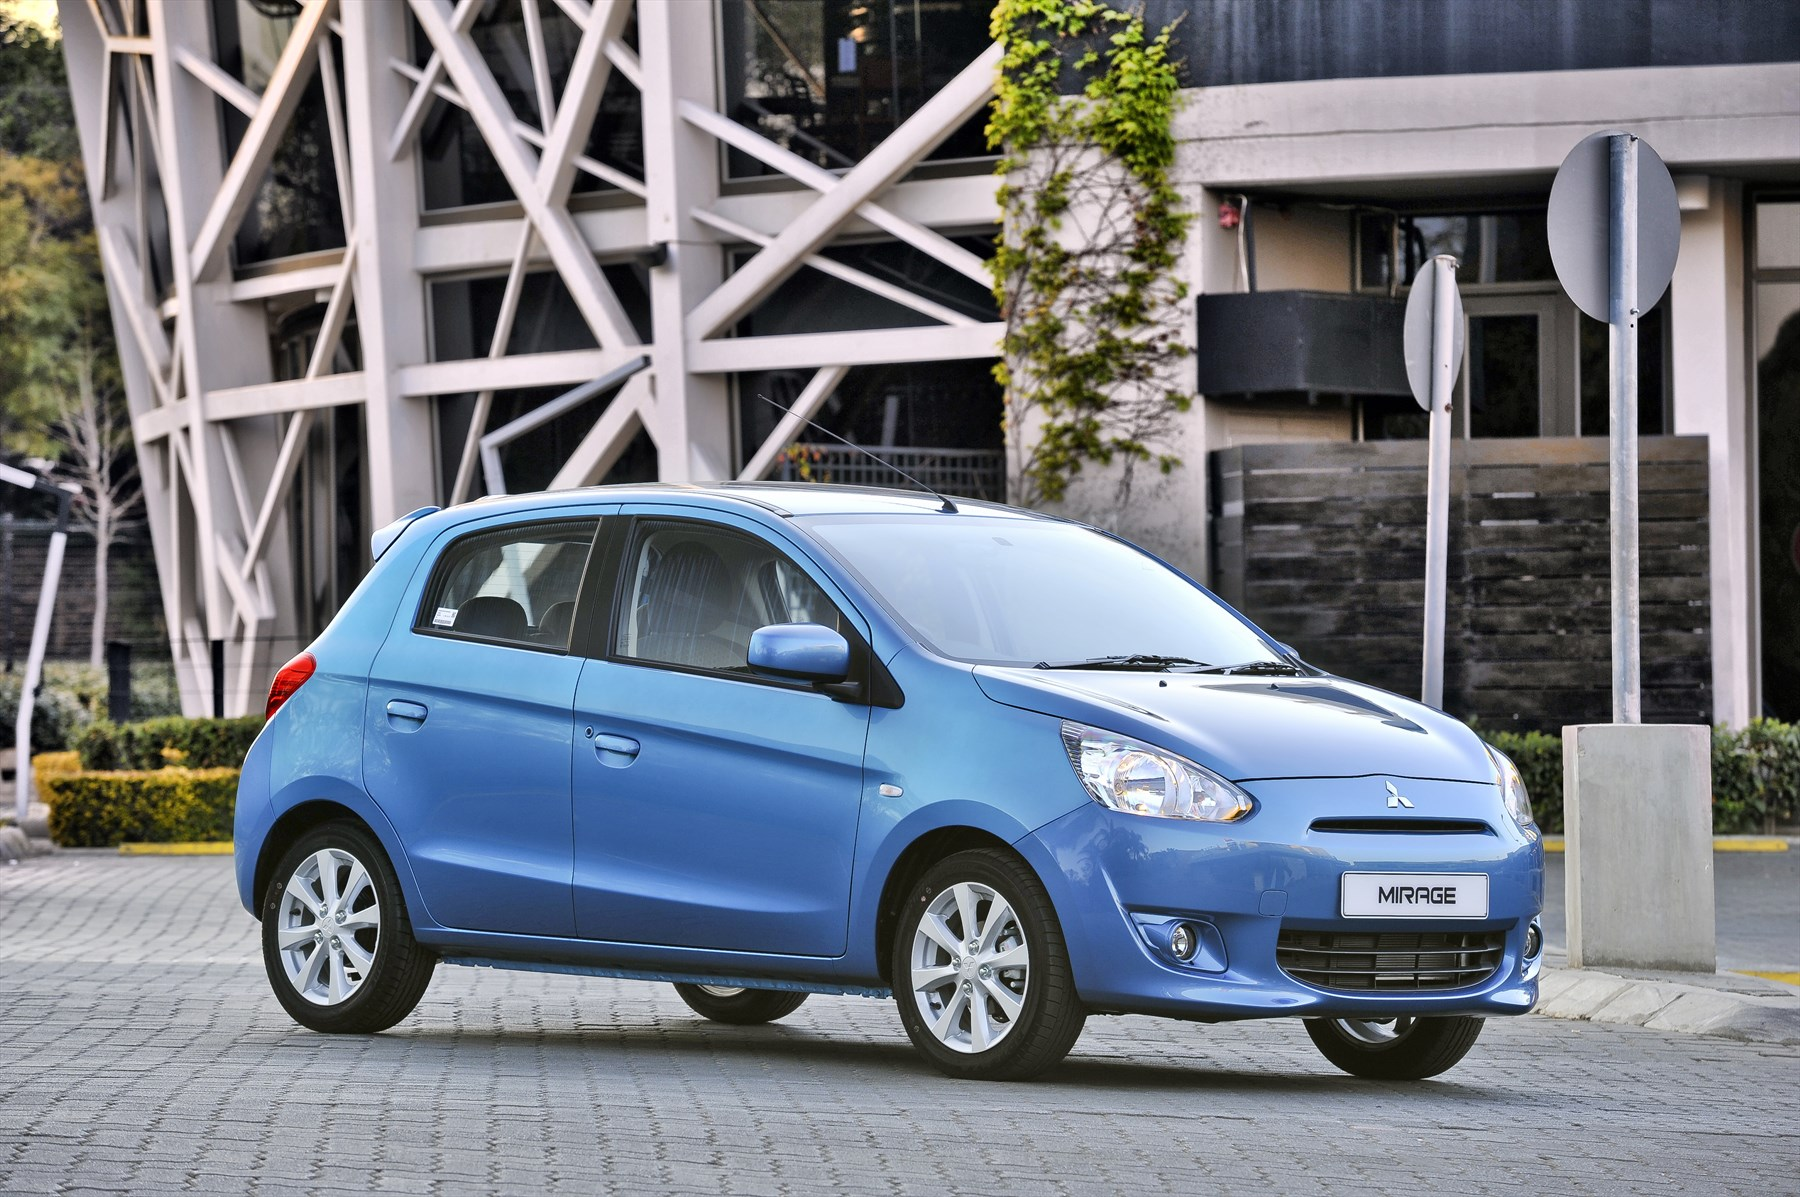 Mitsubishi Mirage Lands In SA: Latest News